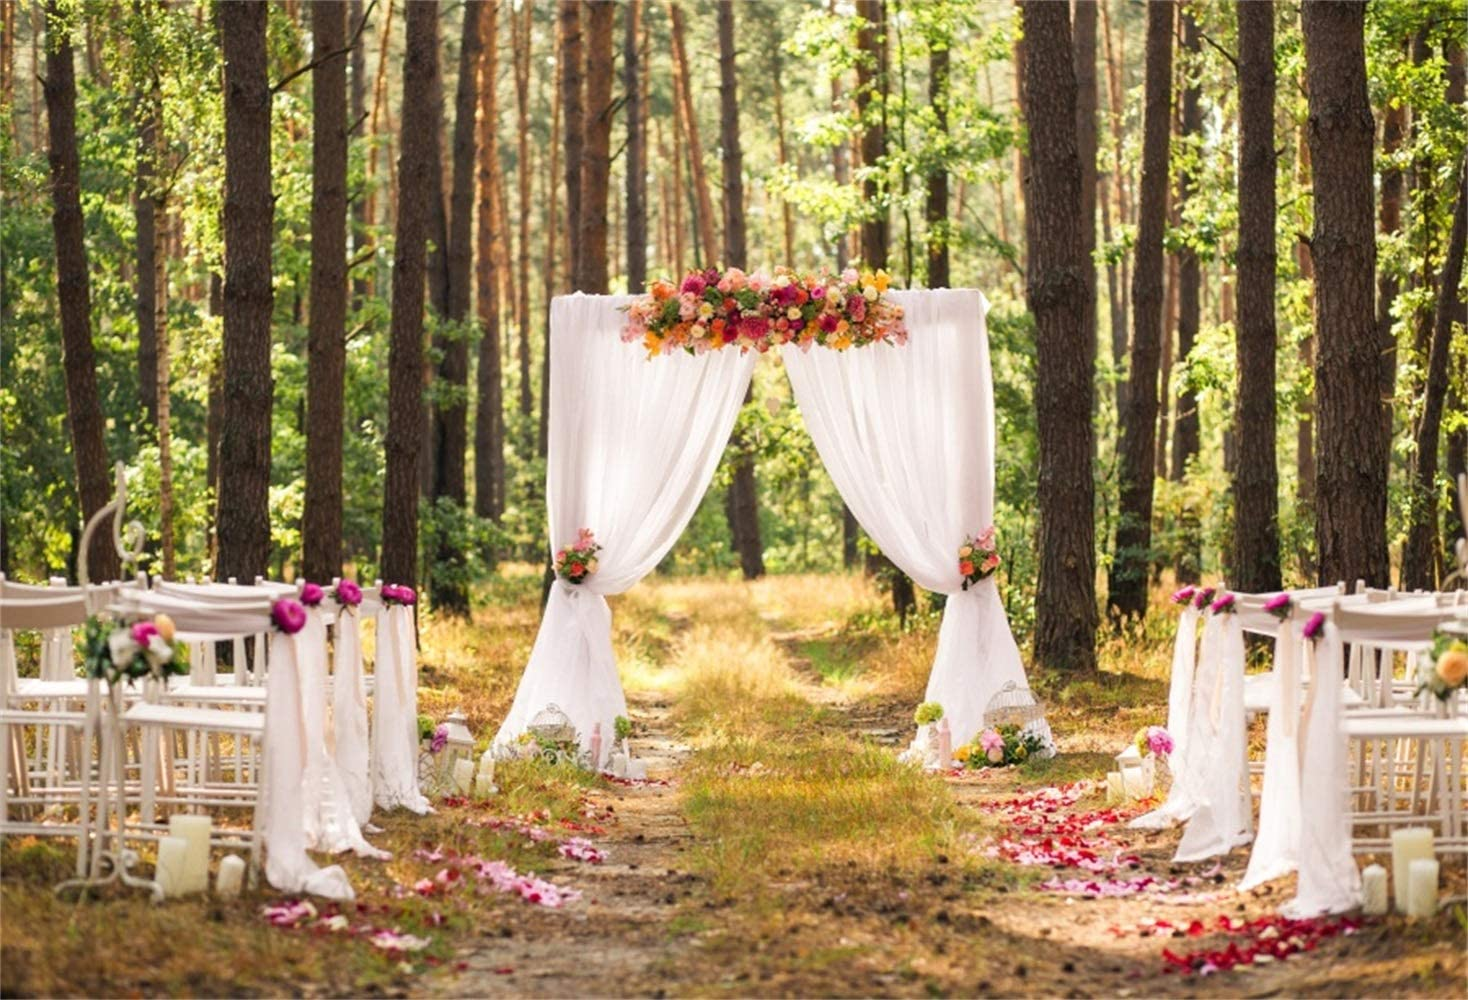 Vinyl Outdoor Wedding Backdrops 8x6.5ft Ribbon Balloons Woods with Love Forever Symble Backgroud Romantic Proposal Confession Autumn Forest Country Garden Artistic Studio Props